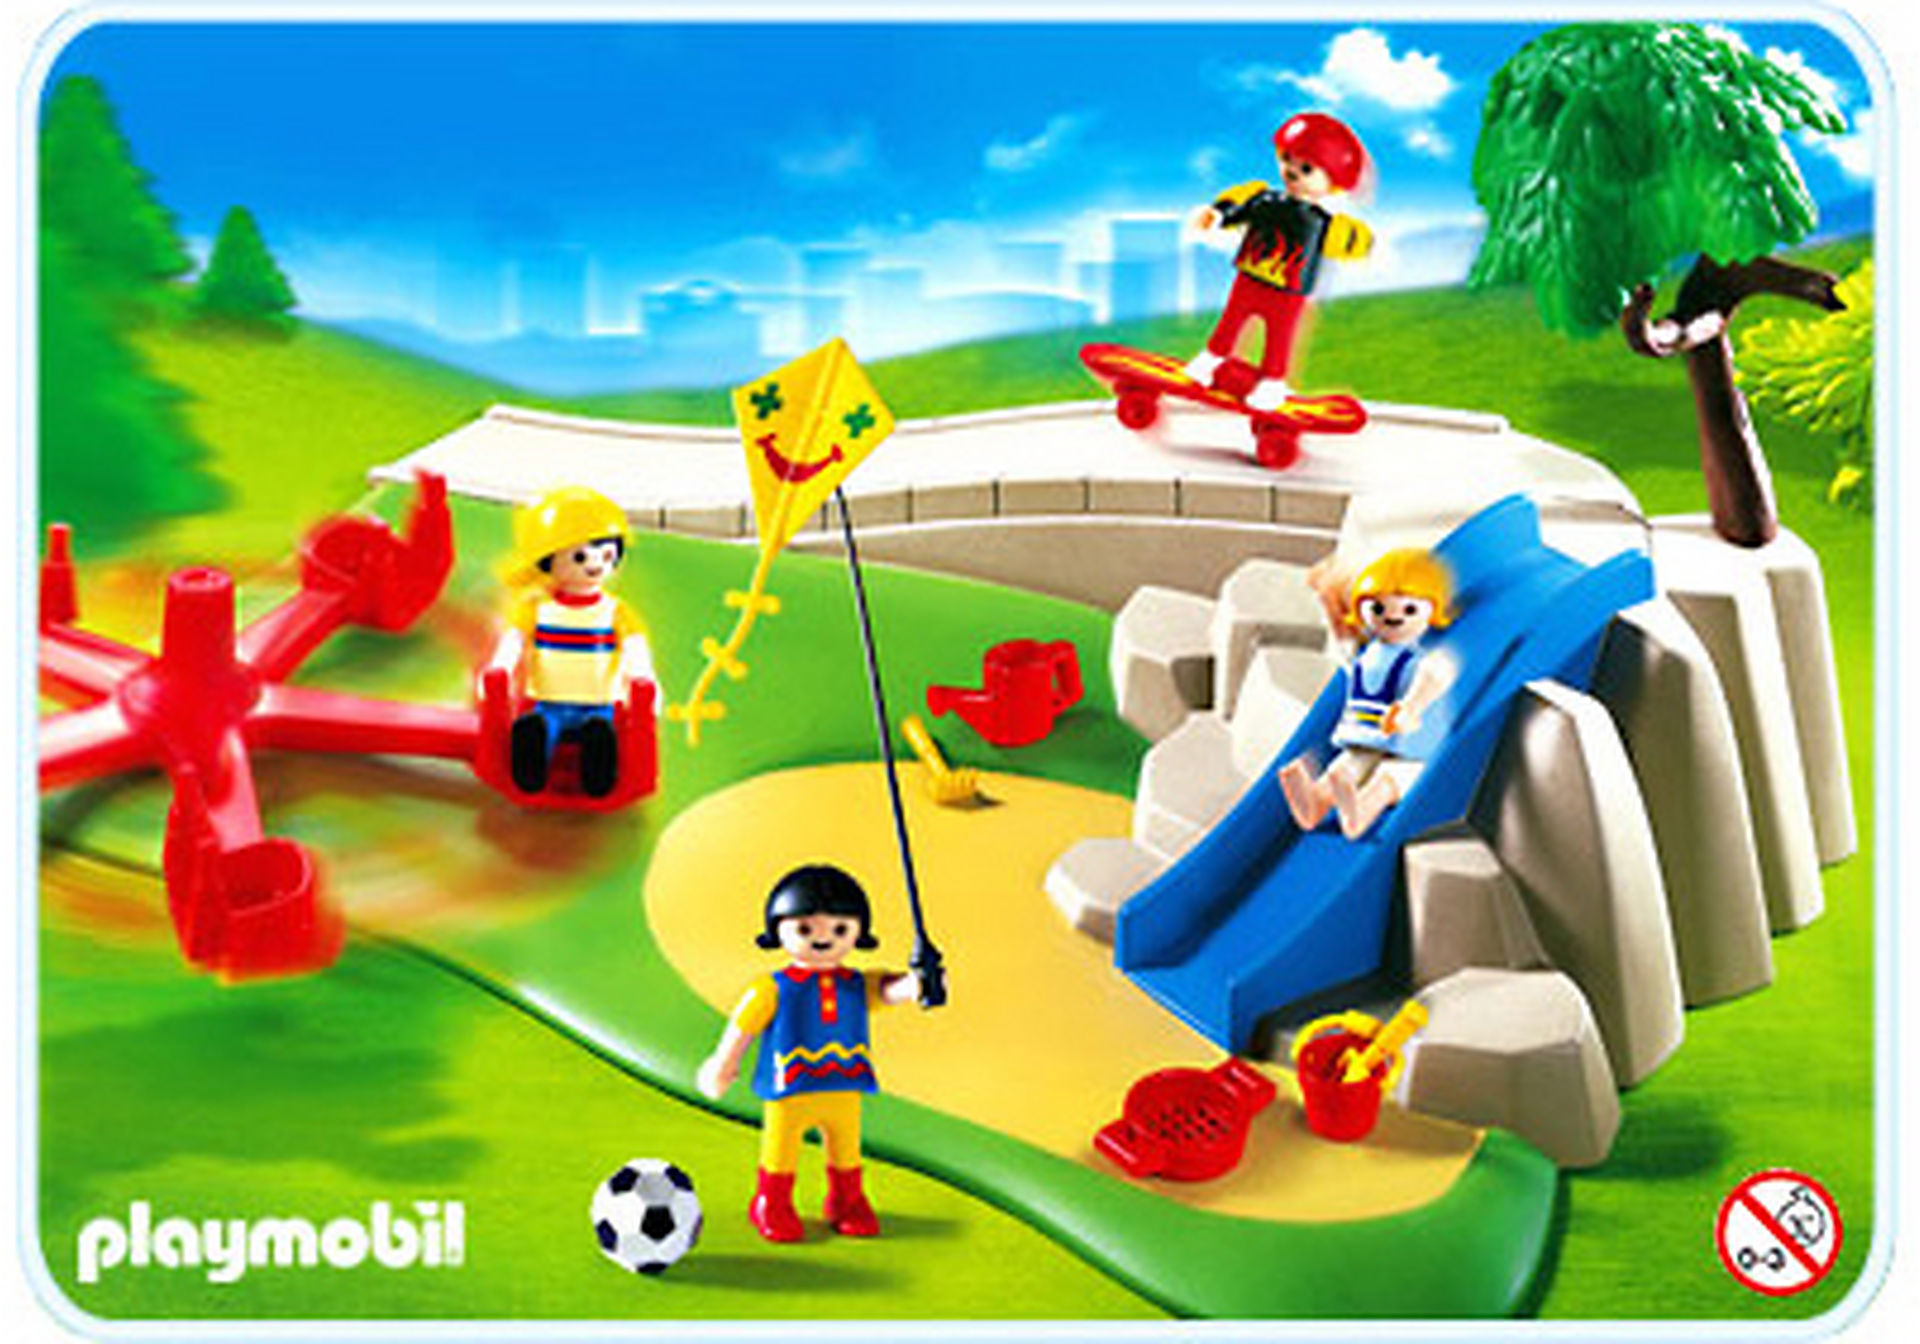 http://media.playmobil.com/i/playmobil/4132-A_product_detail/SuperSet Spielplatz